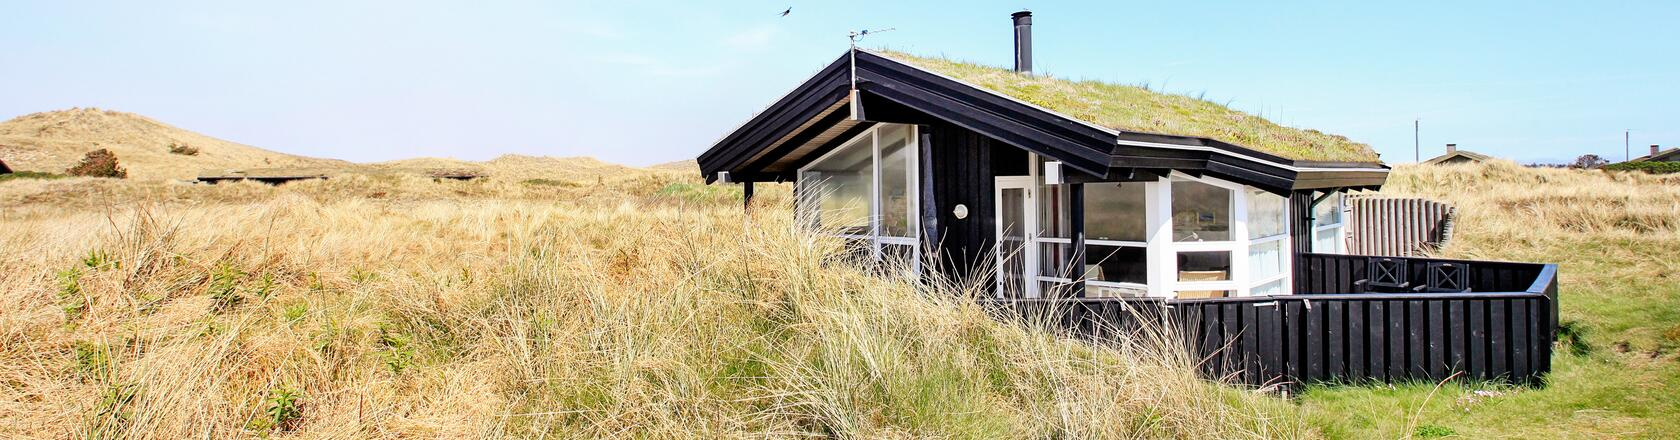 Vester Husby in Denmark - Rent a holiday home  with DanCenter